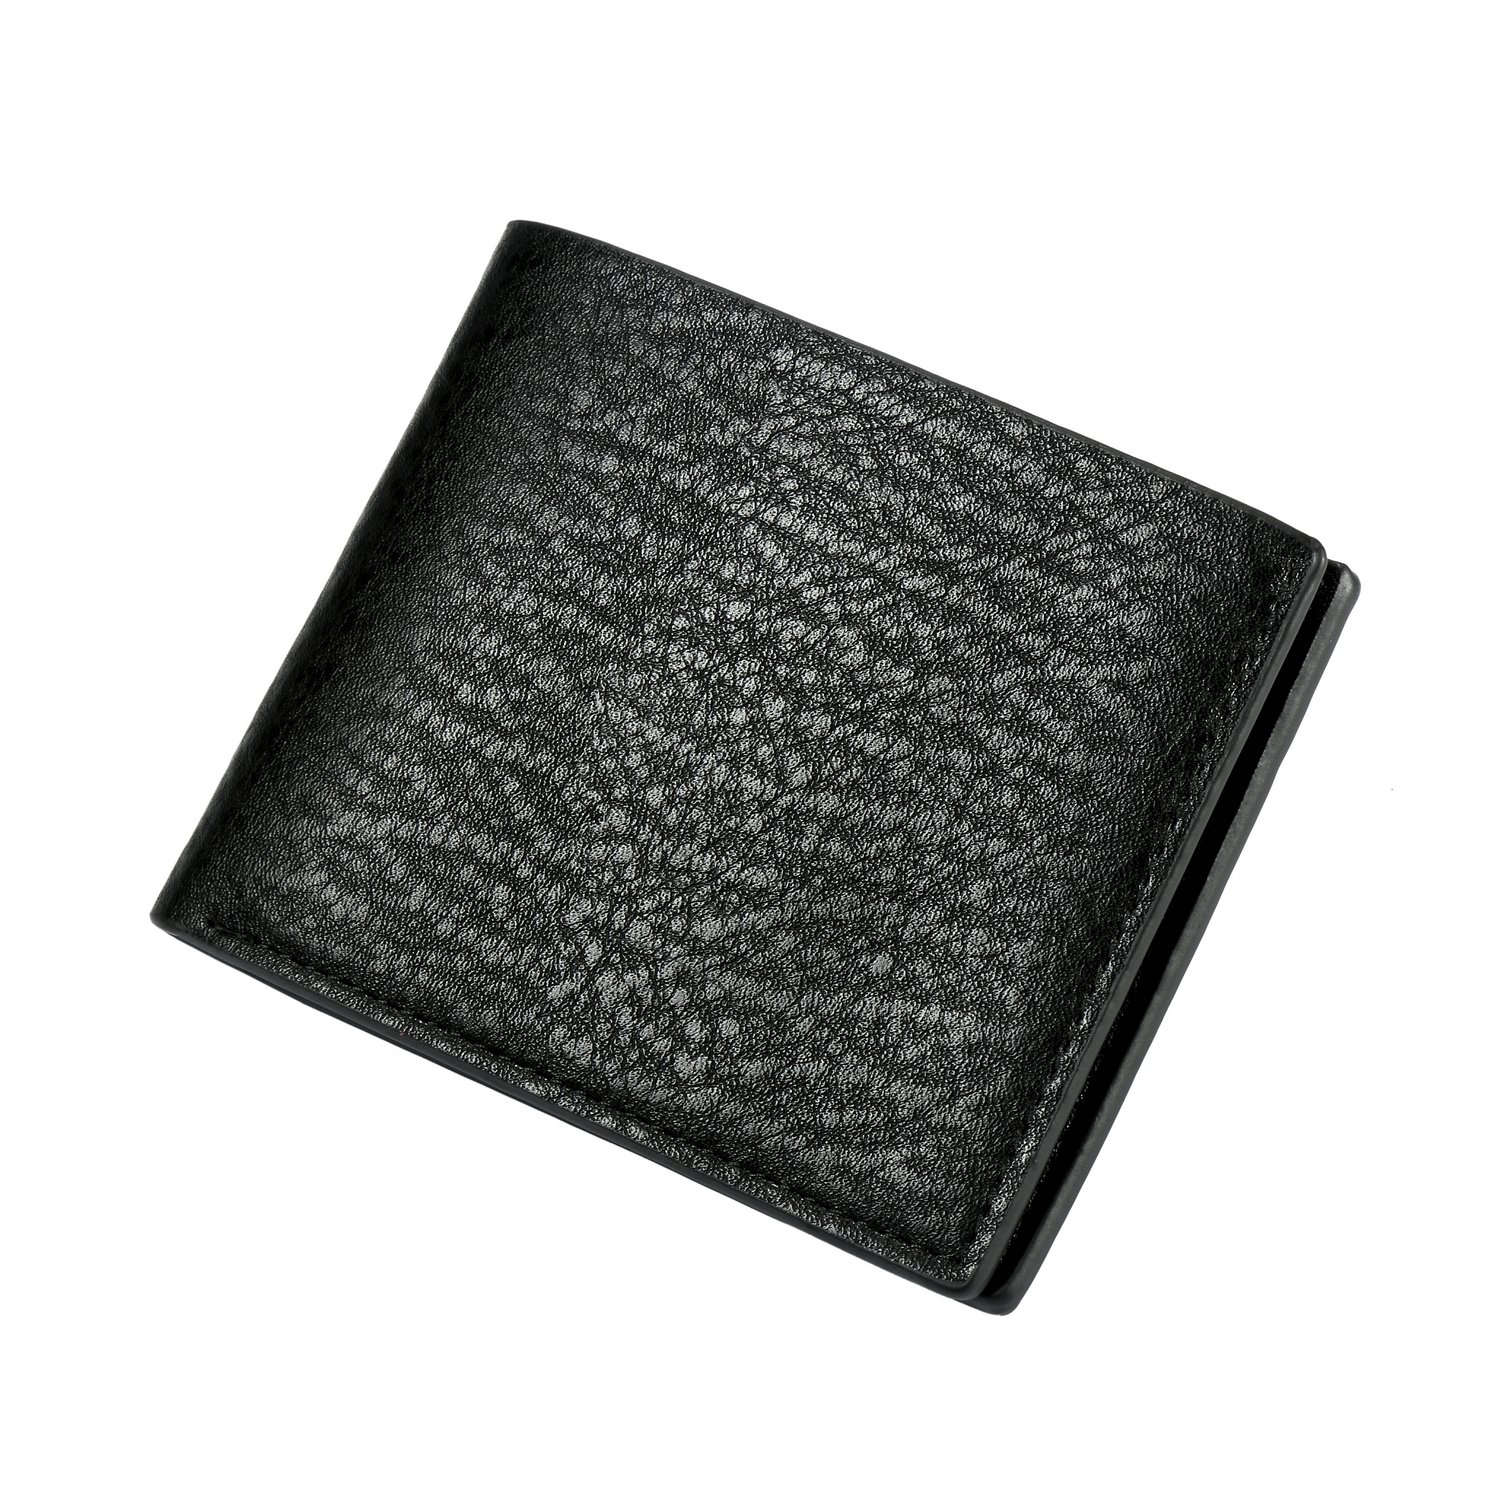 a35bde2eea7 Leather Men s Wallet (Black or Brown) Slim Travel Bifold Hold Credit Cards  Money ID